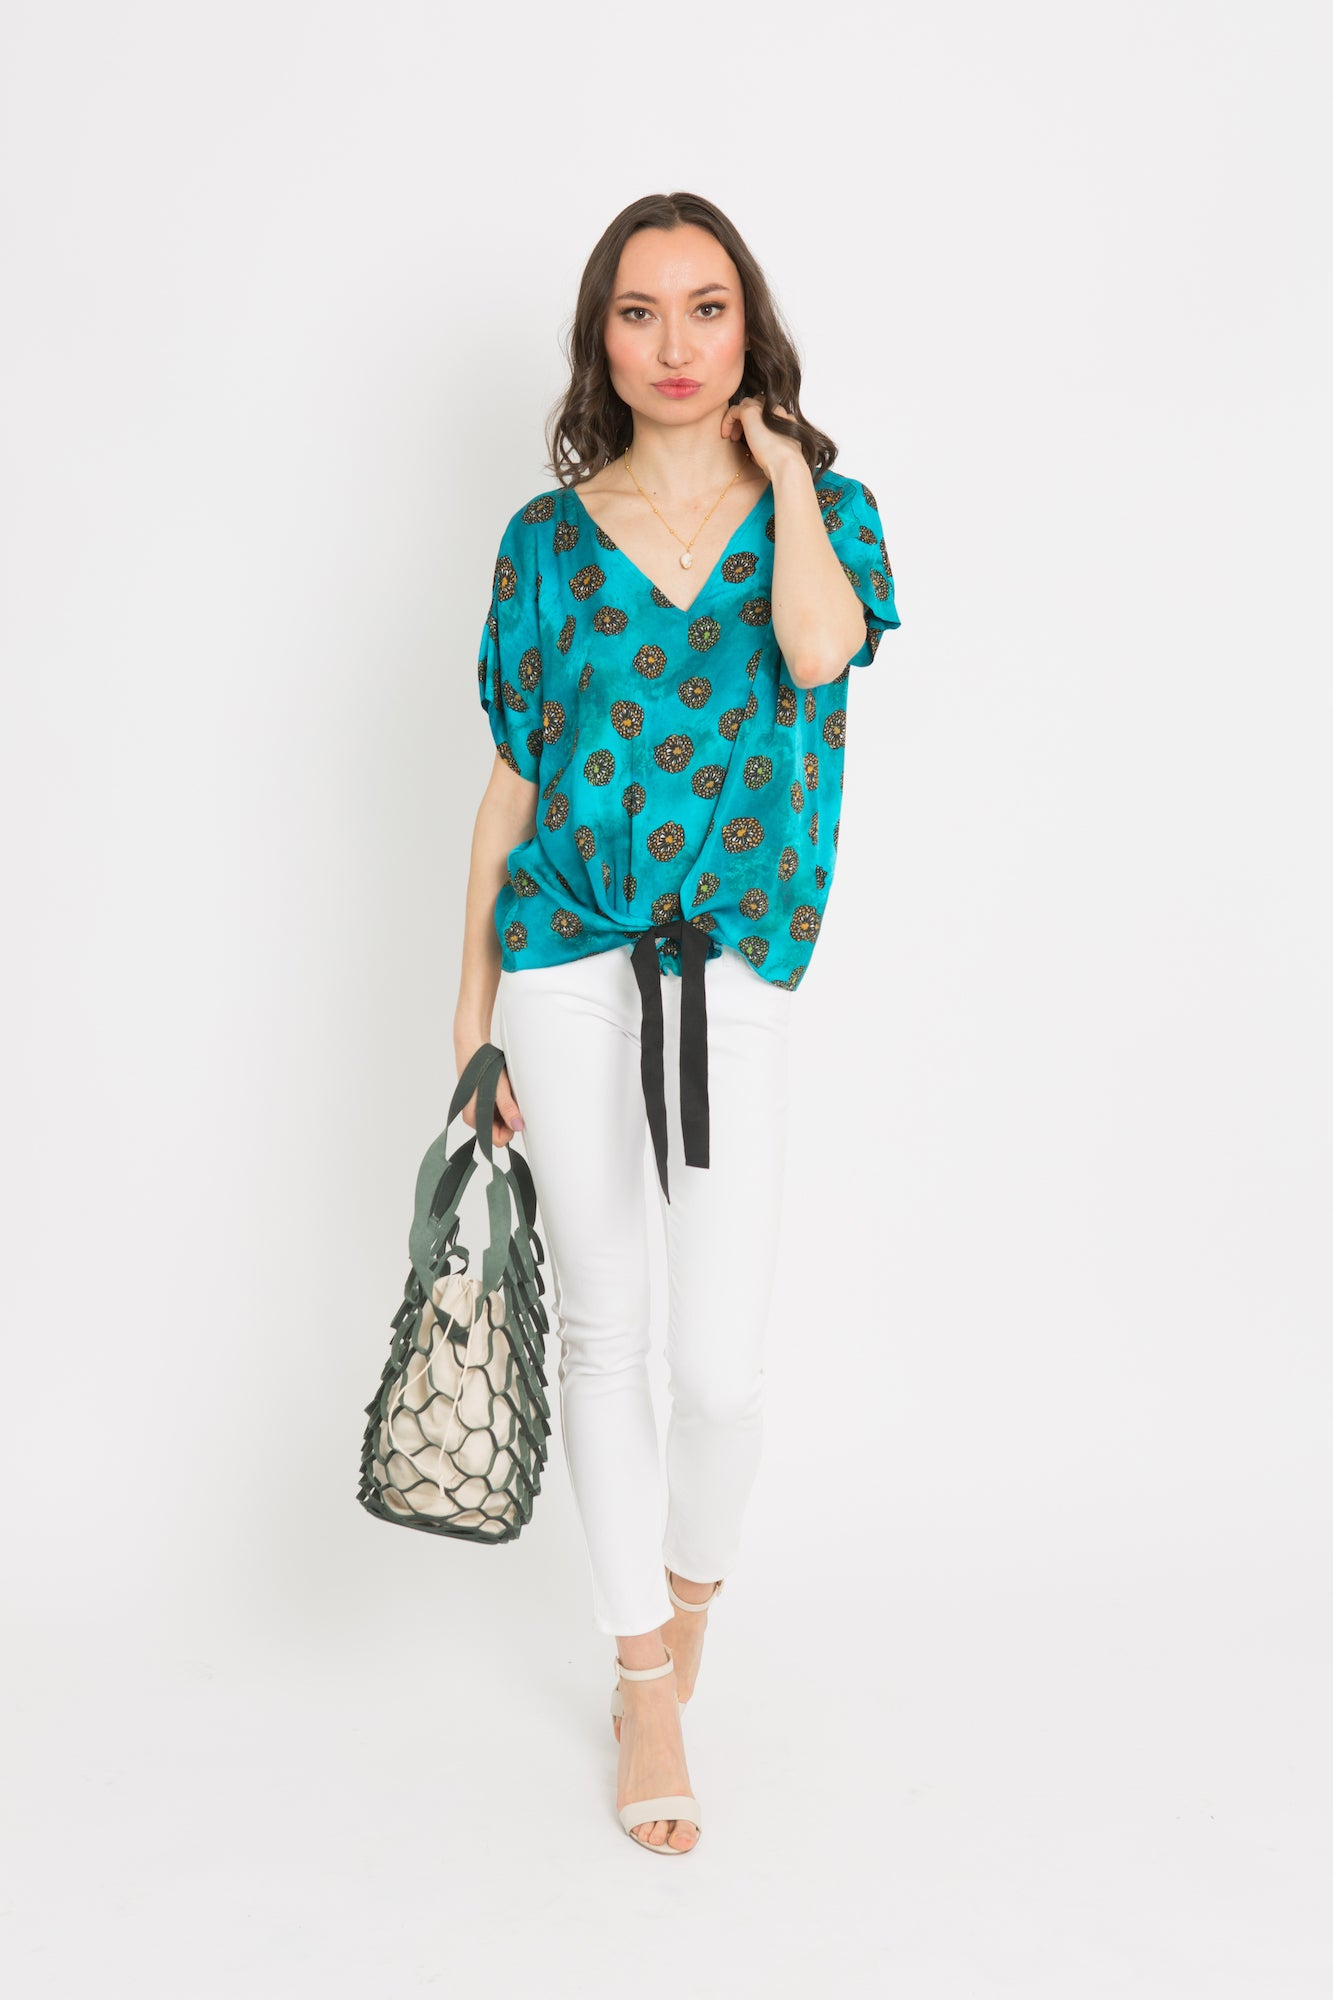 Ada Print Kimono Top - OGONEWYORK | Contemporary Womenswear | Ethical | Kind